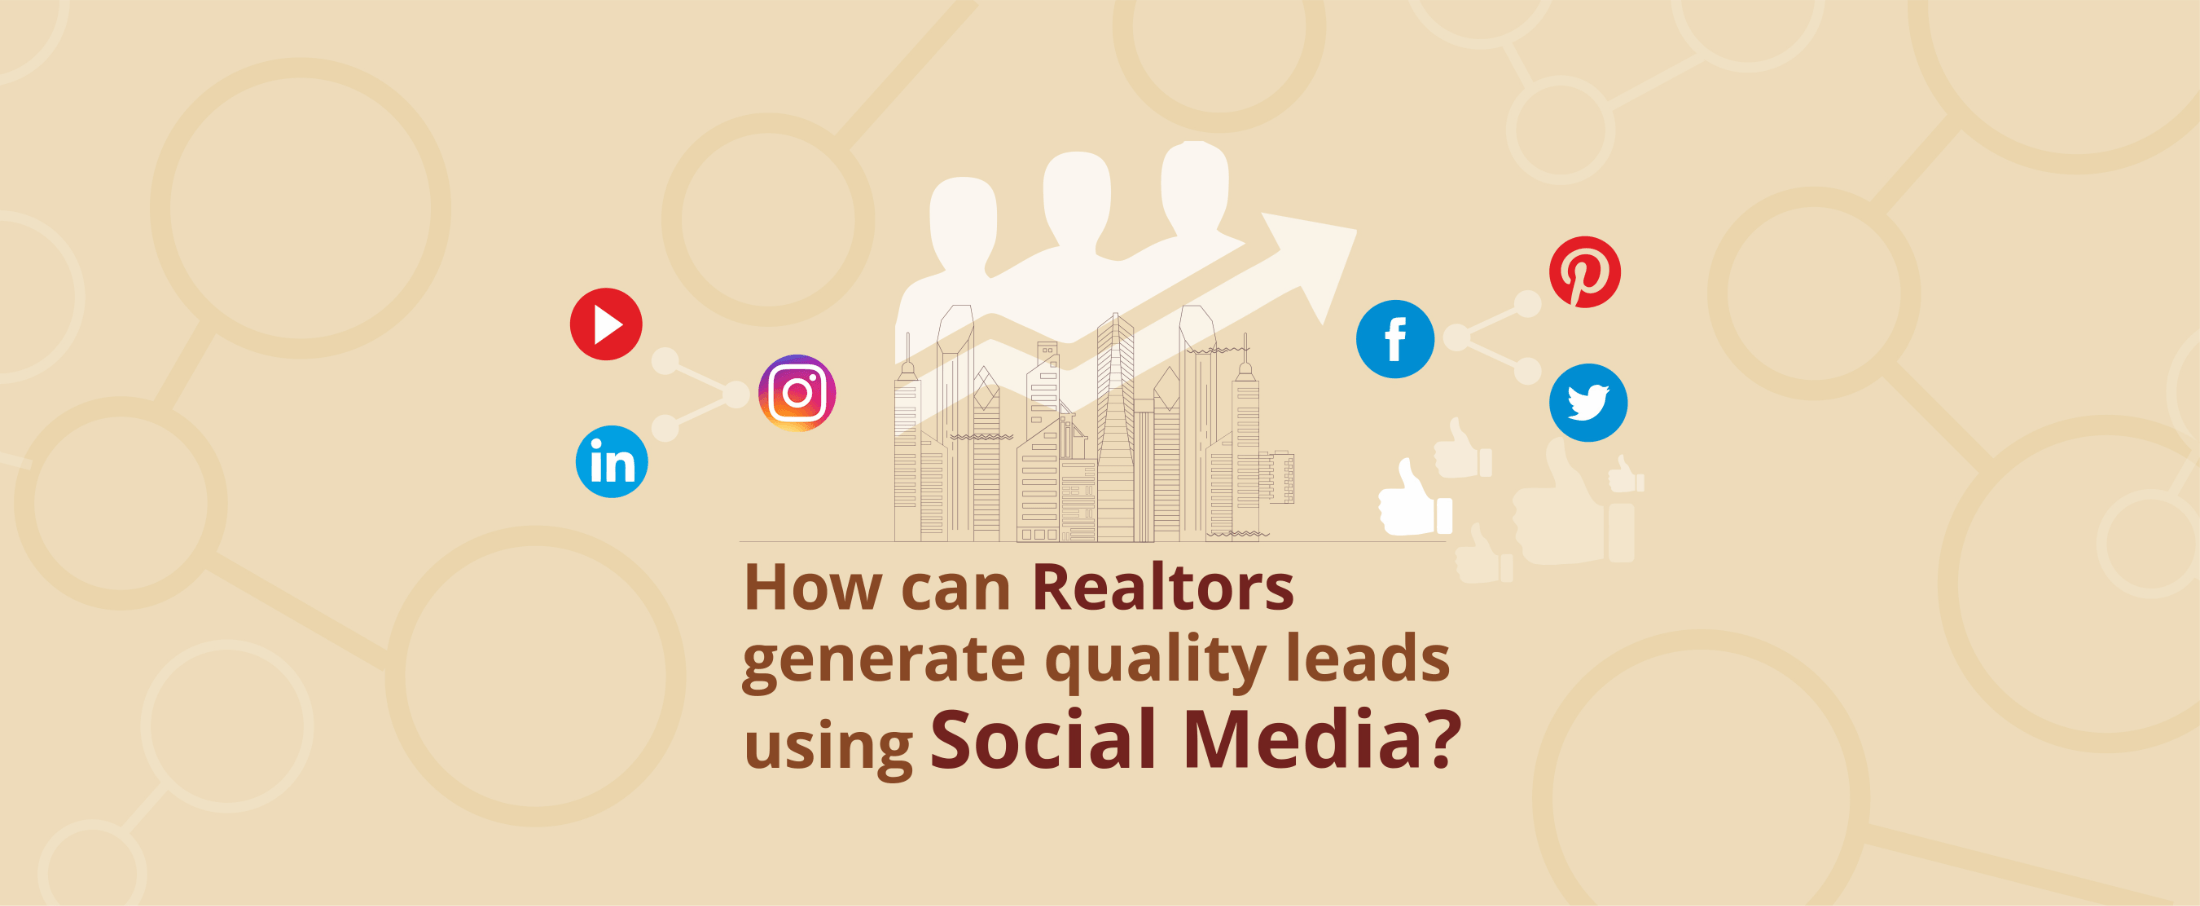 How can Realtors generate quality leads using Social Media